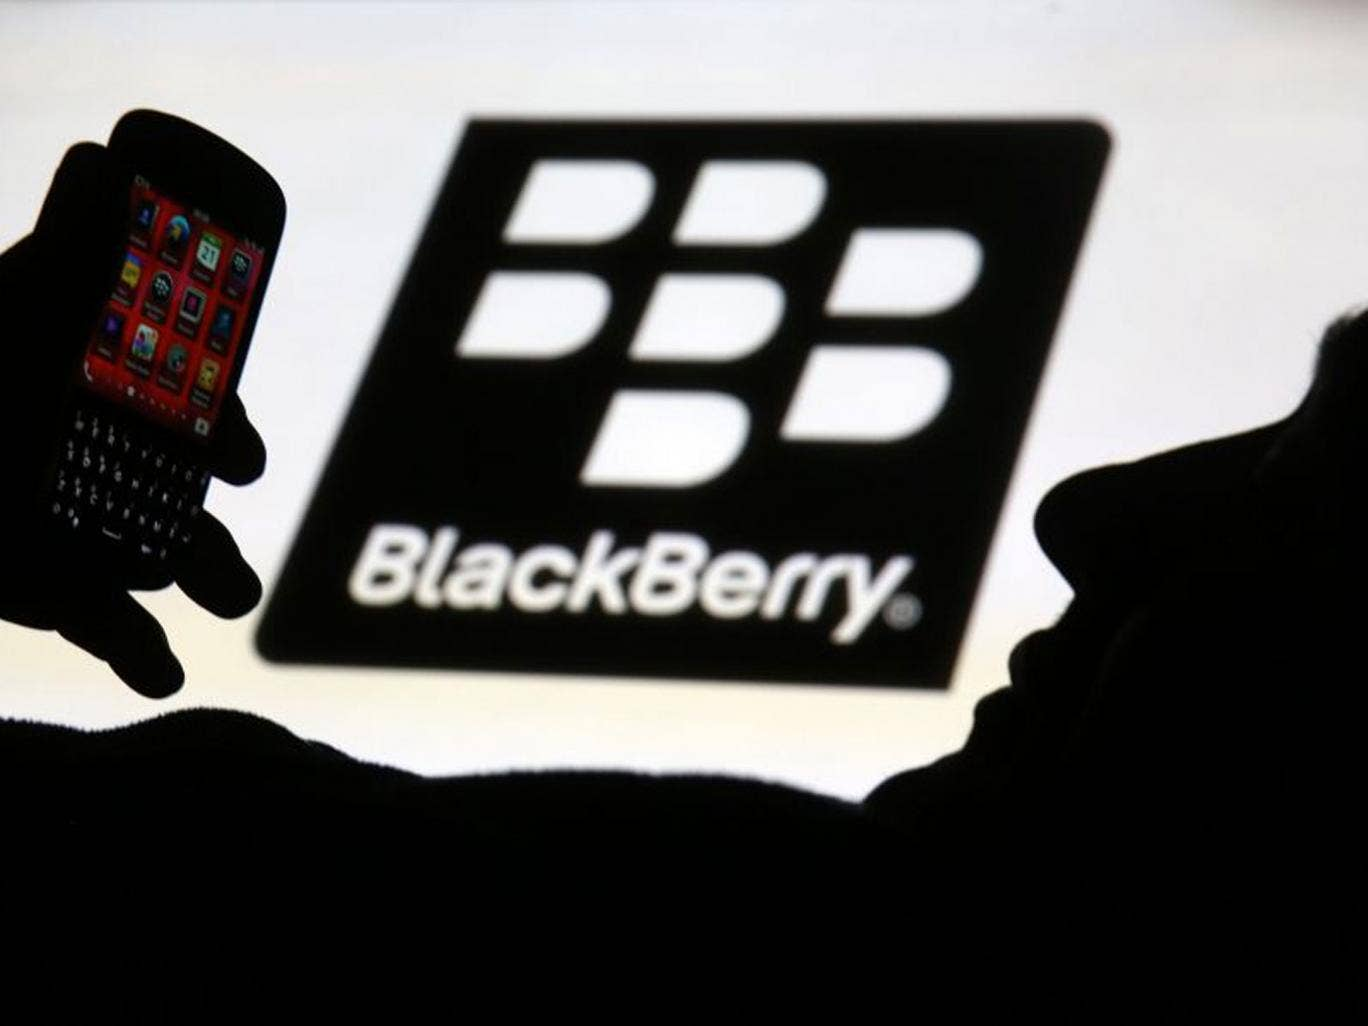 Blackberry was once valued at more than $80bn (£50bn)